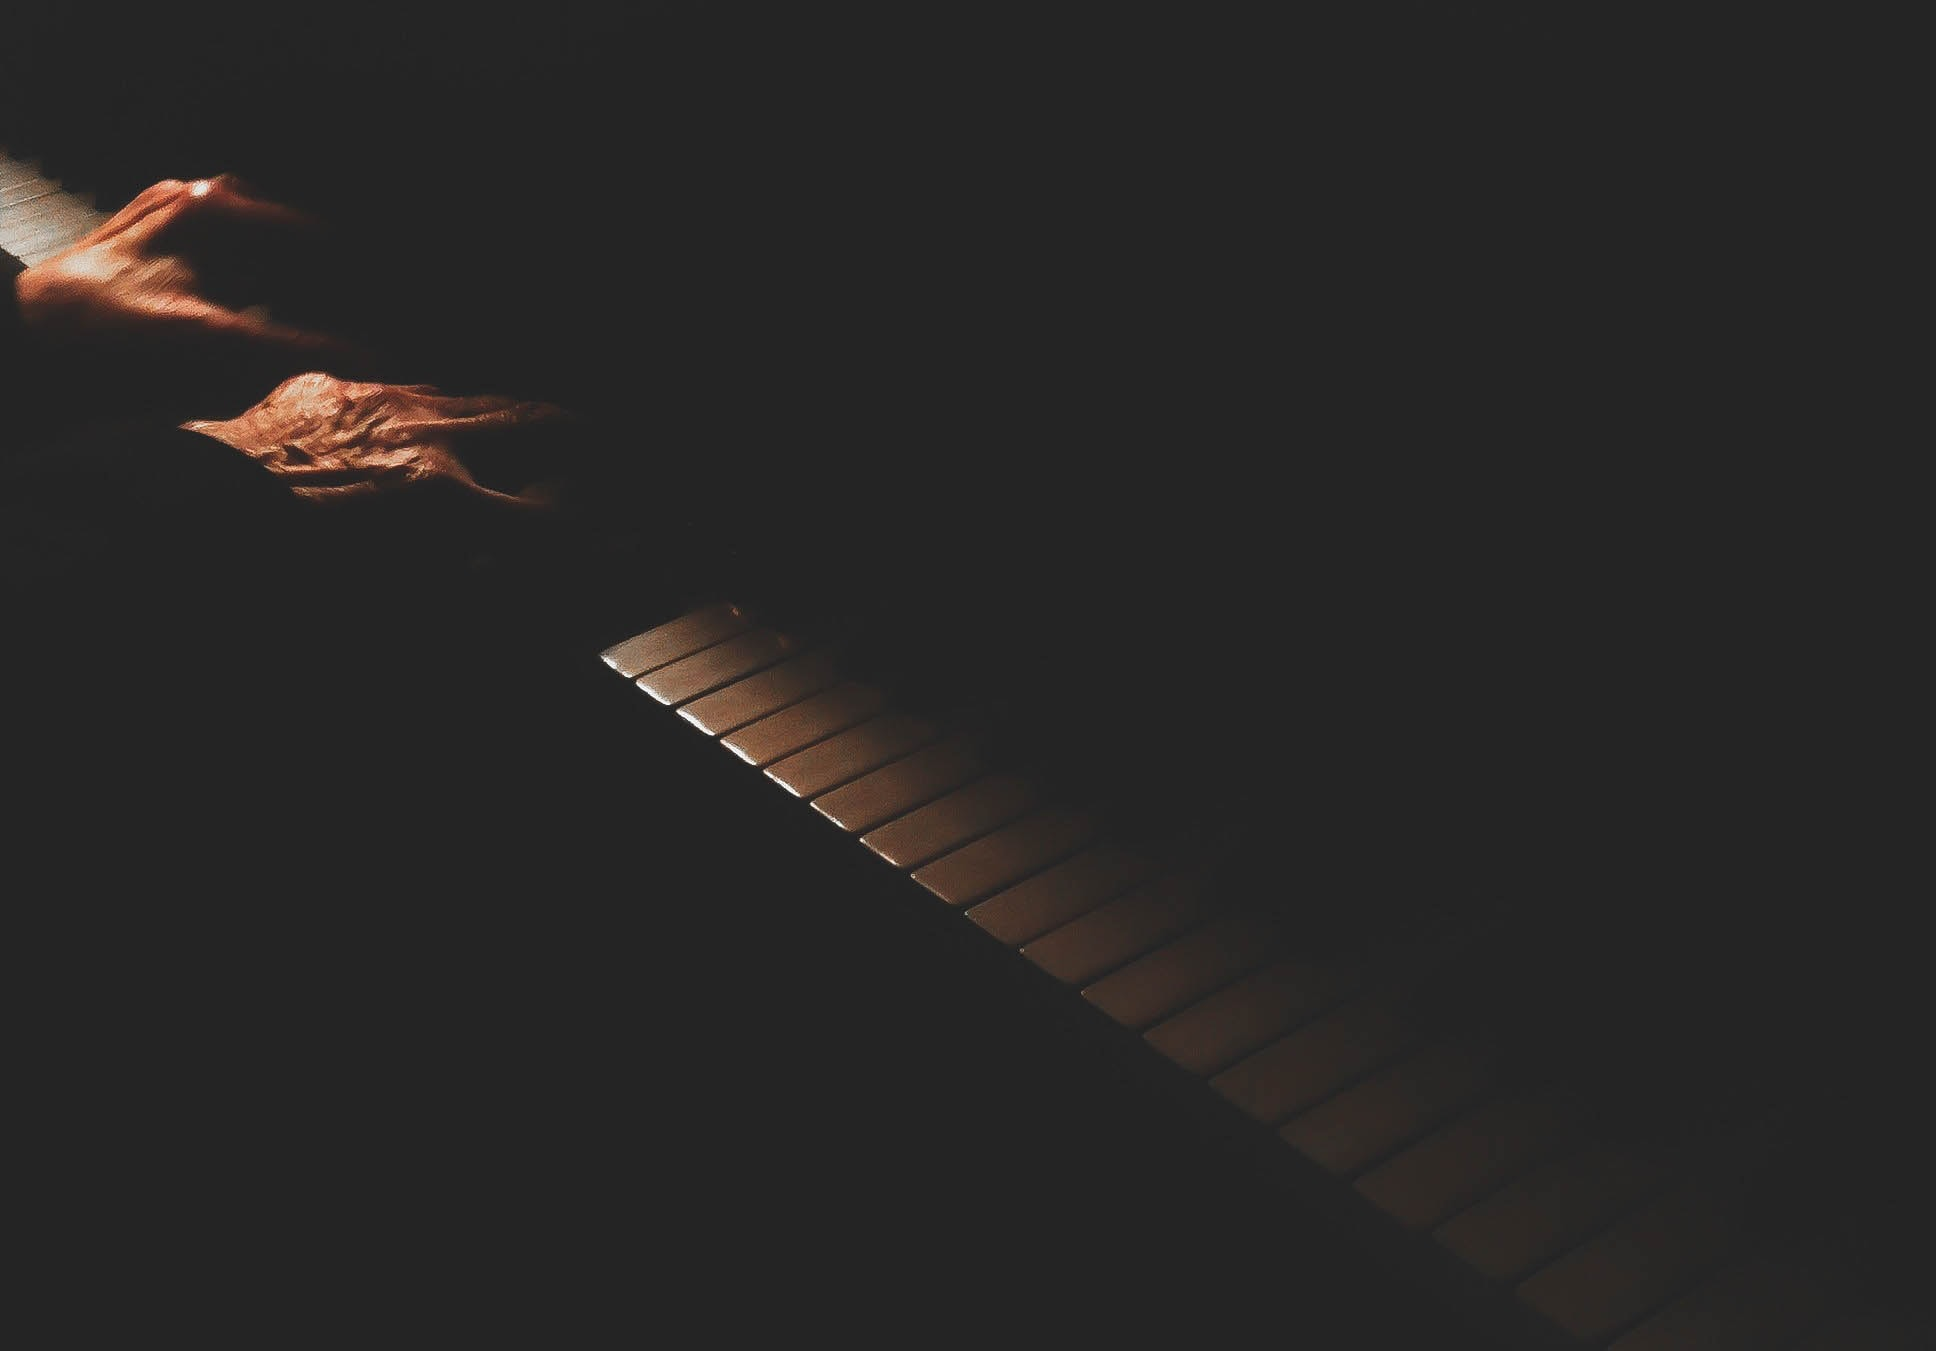 A dim shot of an elderly person's hands on a piano keyboard